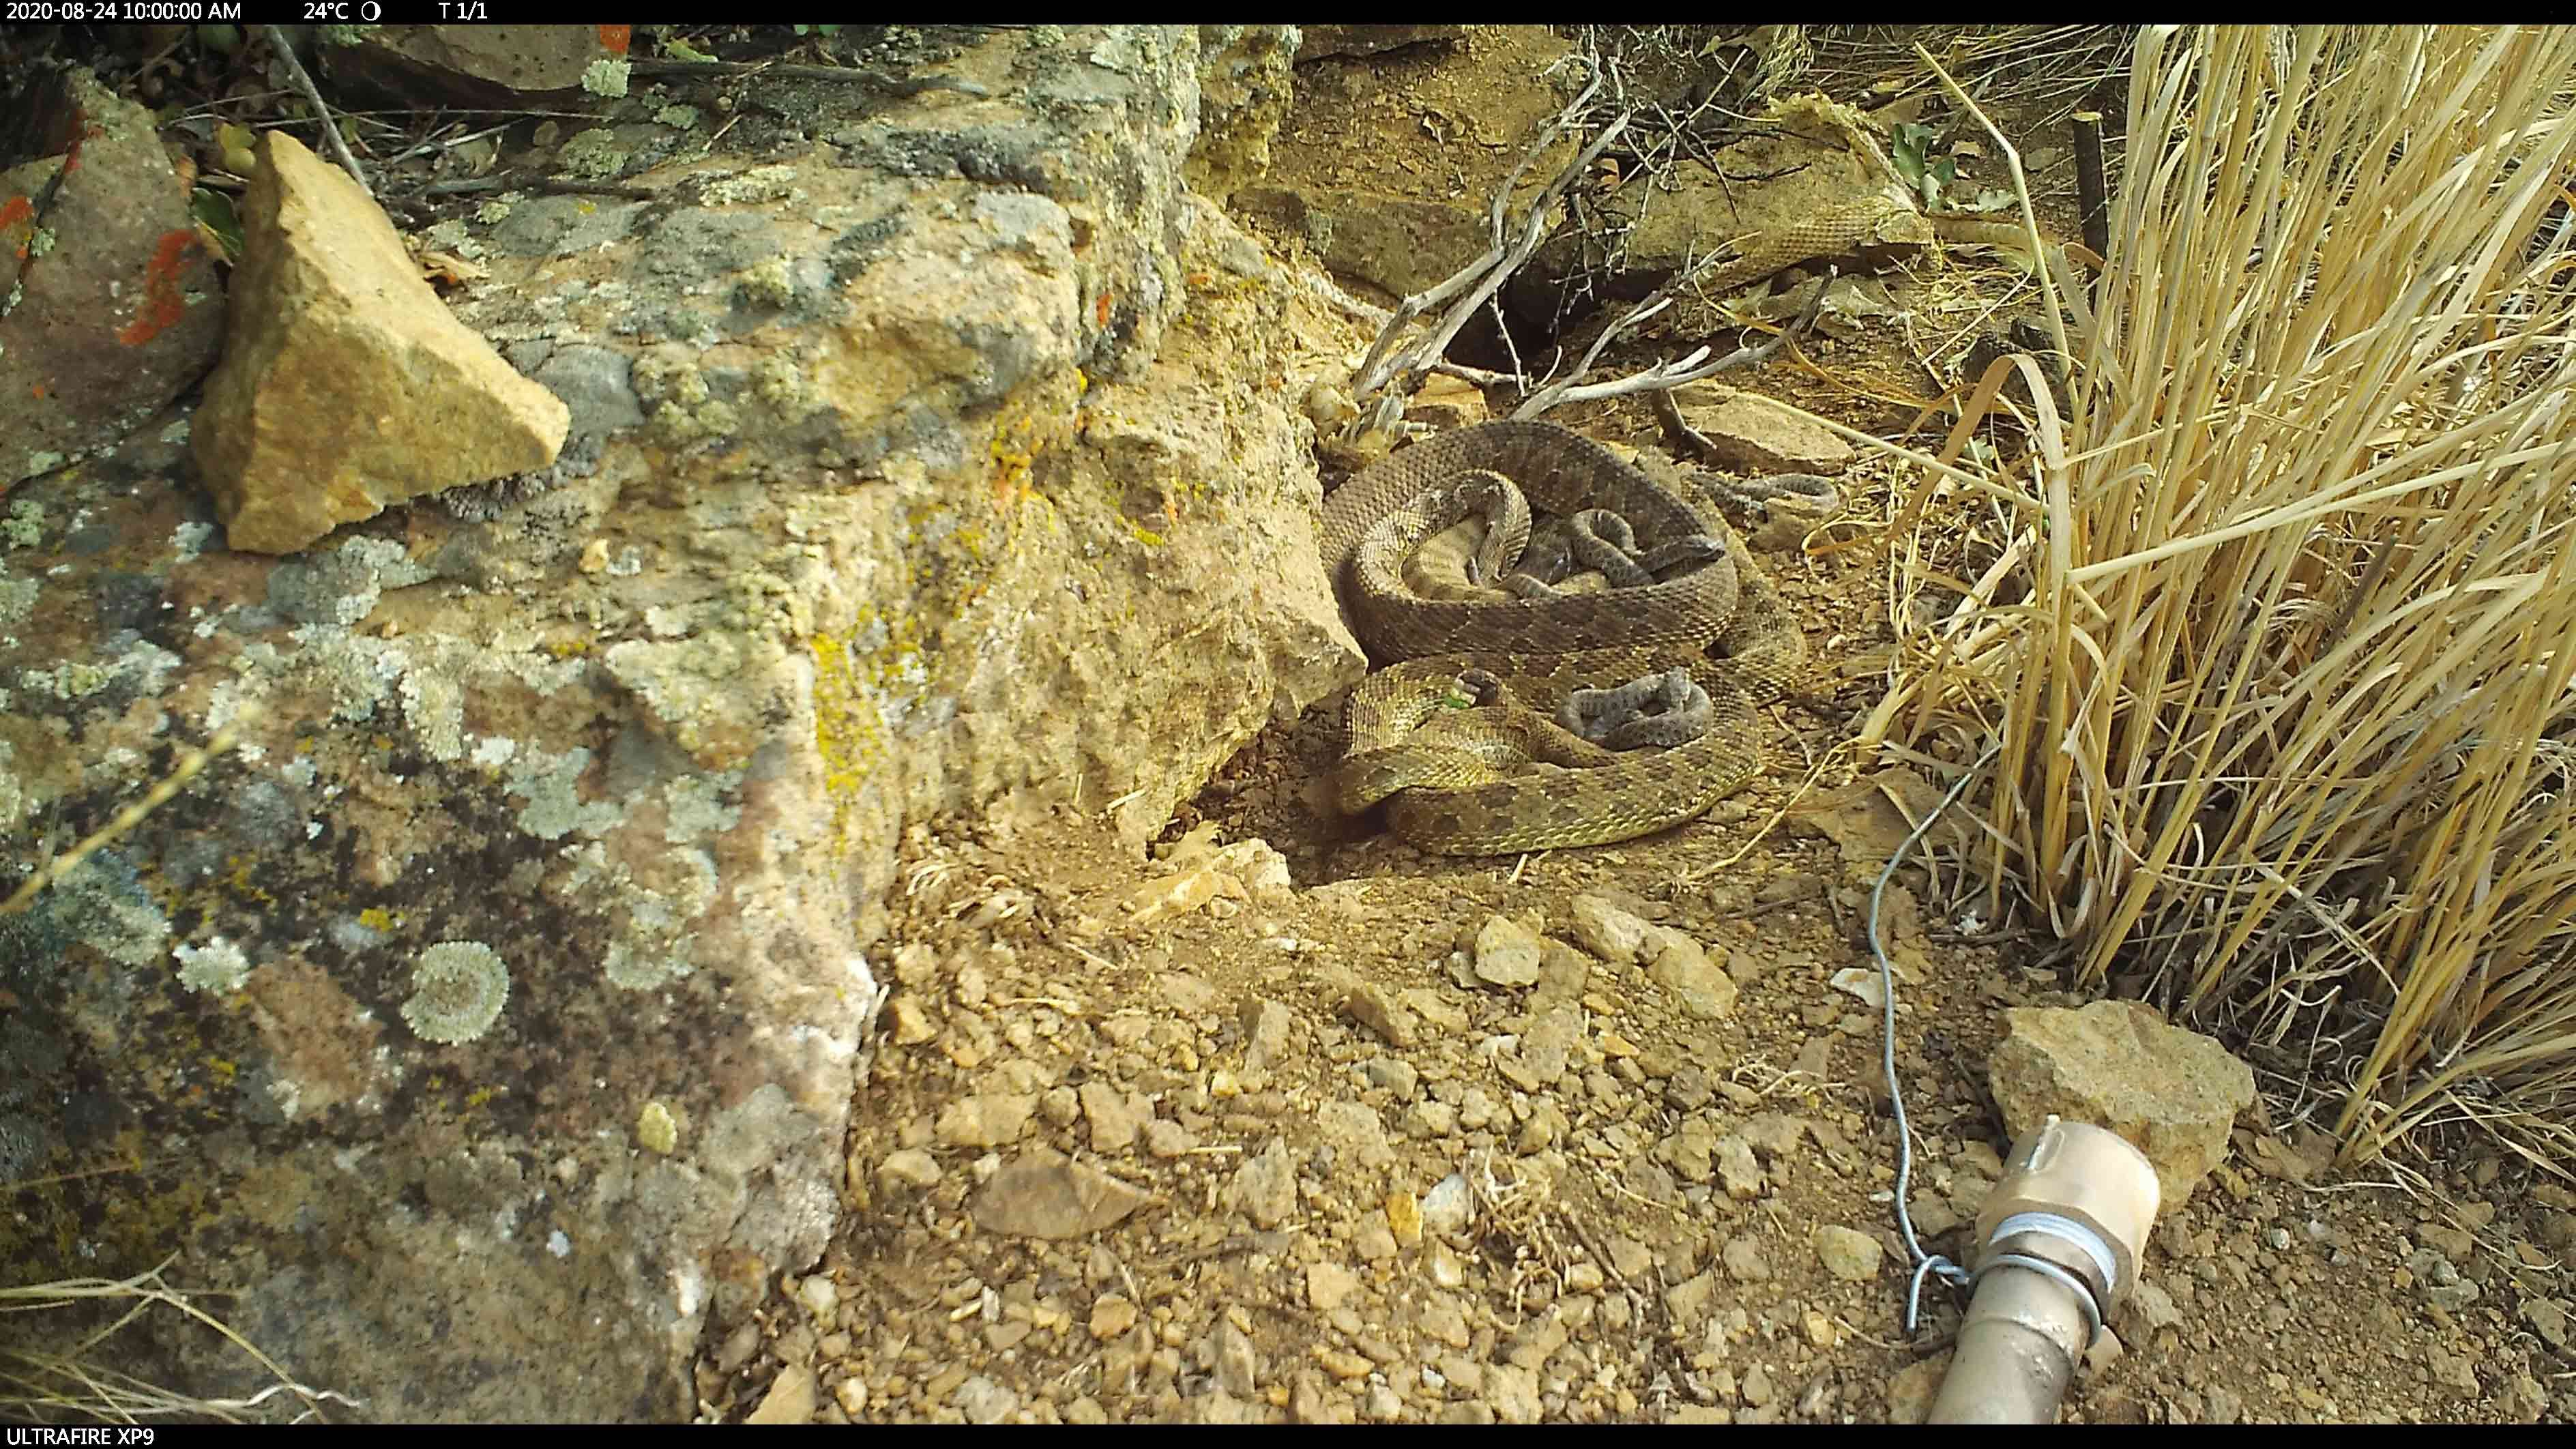 Much thinner after giving birth, the rattlesnake mothers bask with their pups.